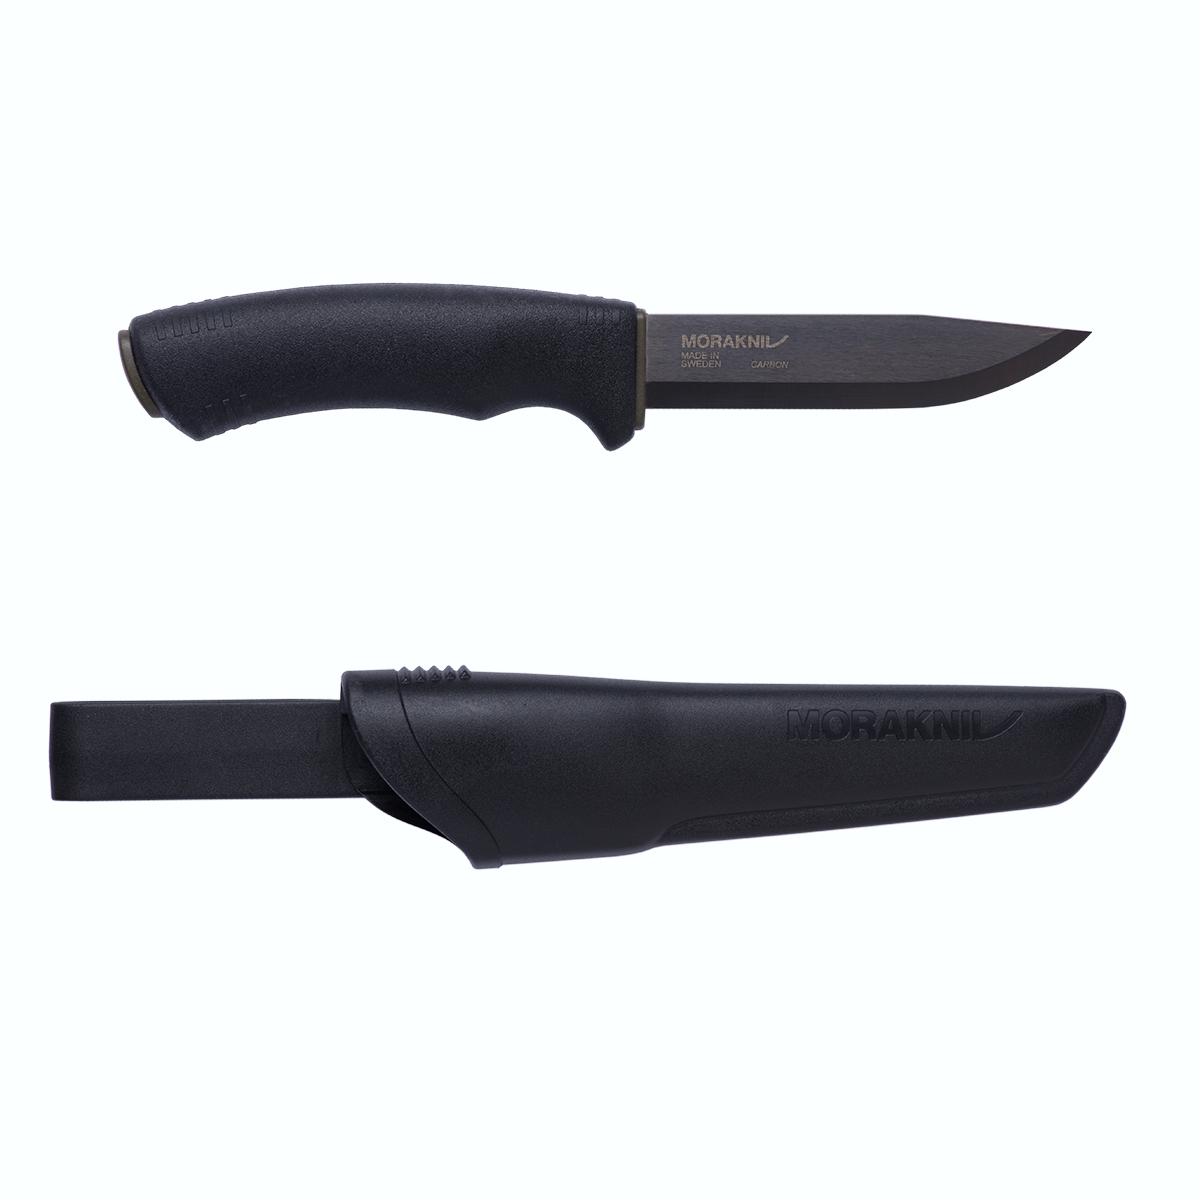 Bushcraft BlackHigh CarbonSteel Outdoor Knife/Clam